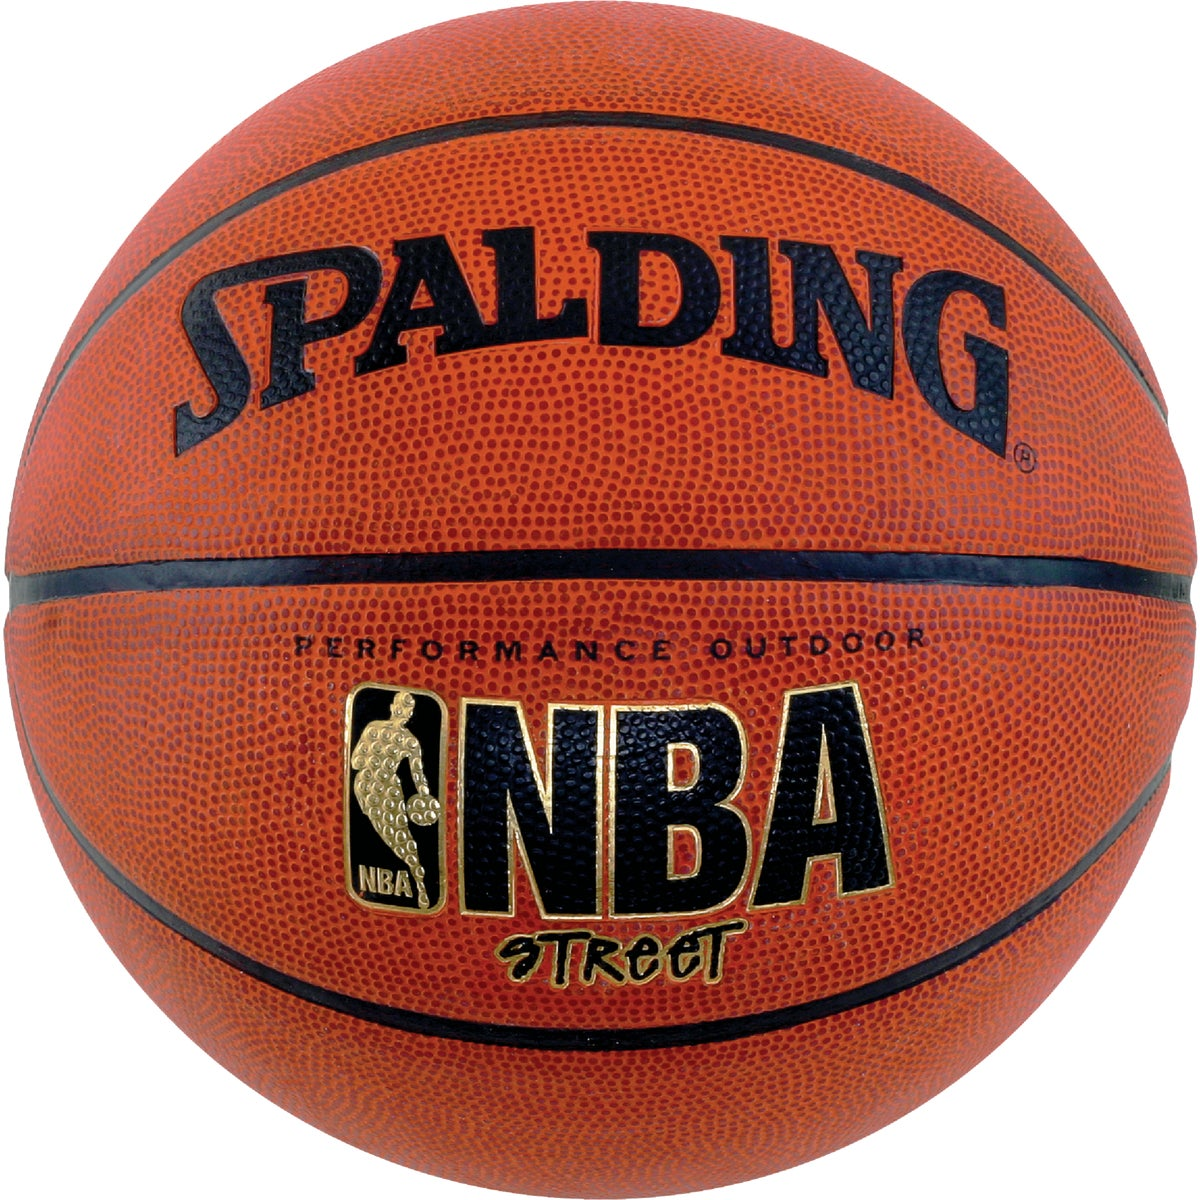 29.5 STREET BASKETBALL - 63-249 by Spalding Sports